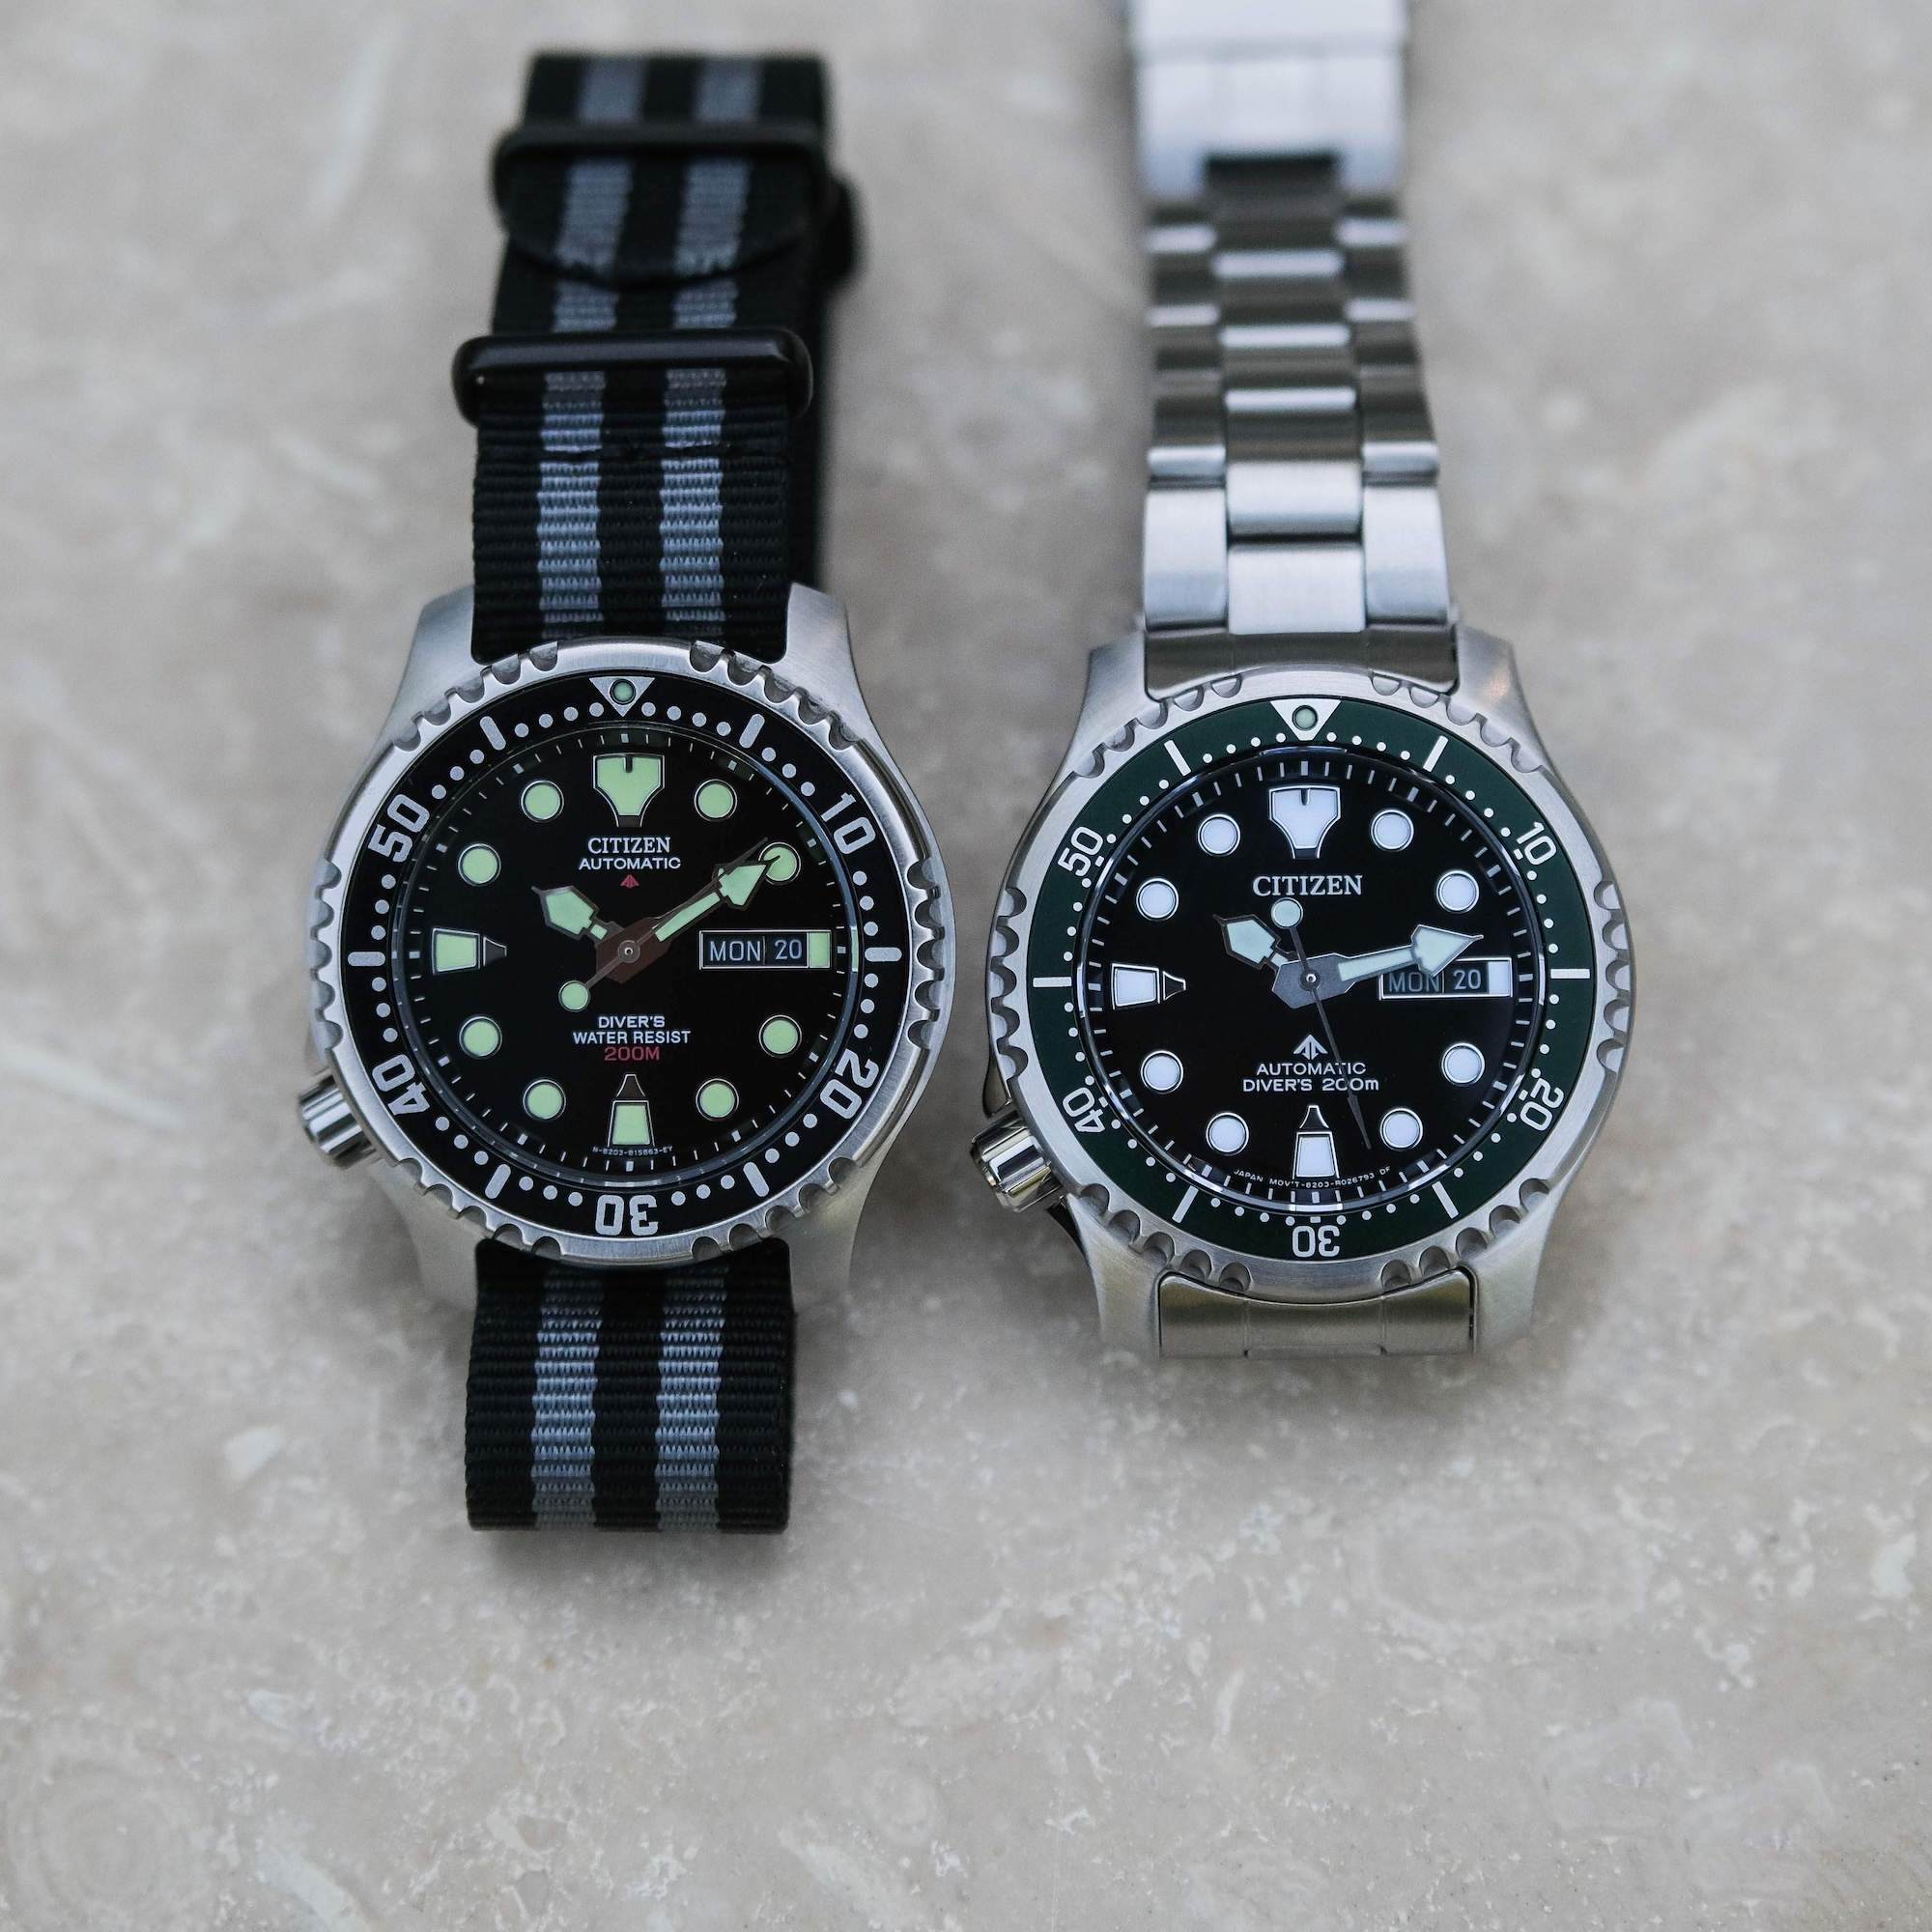 Citizen NY0084 vs NY0040